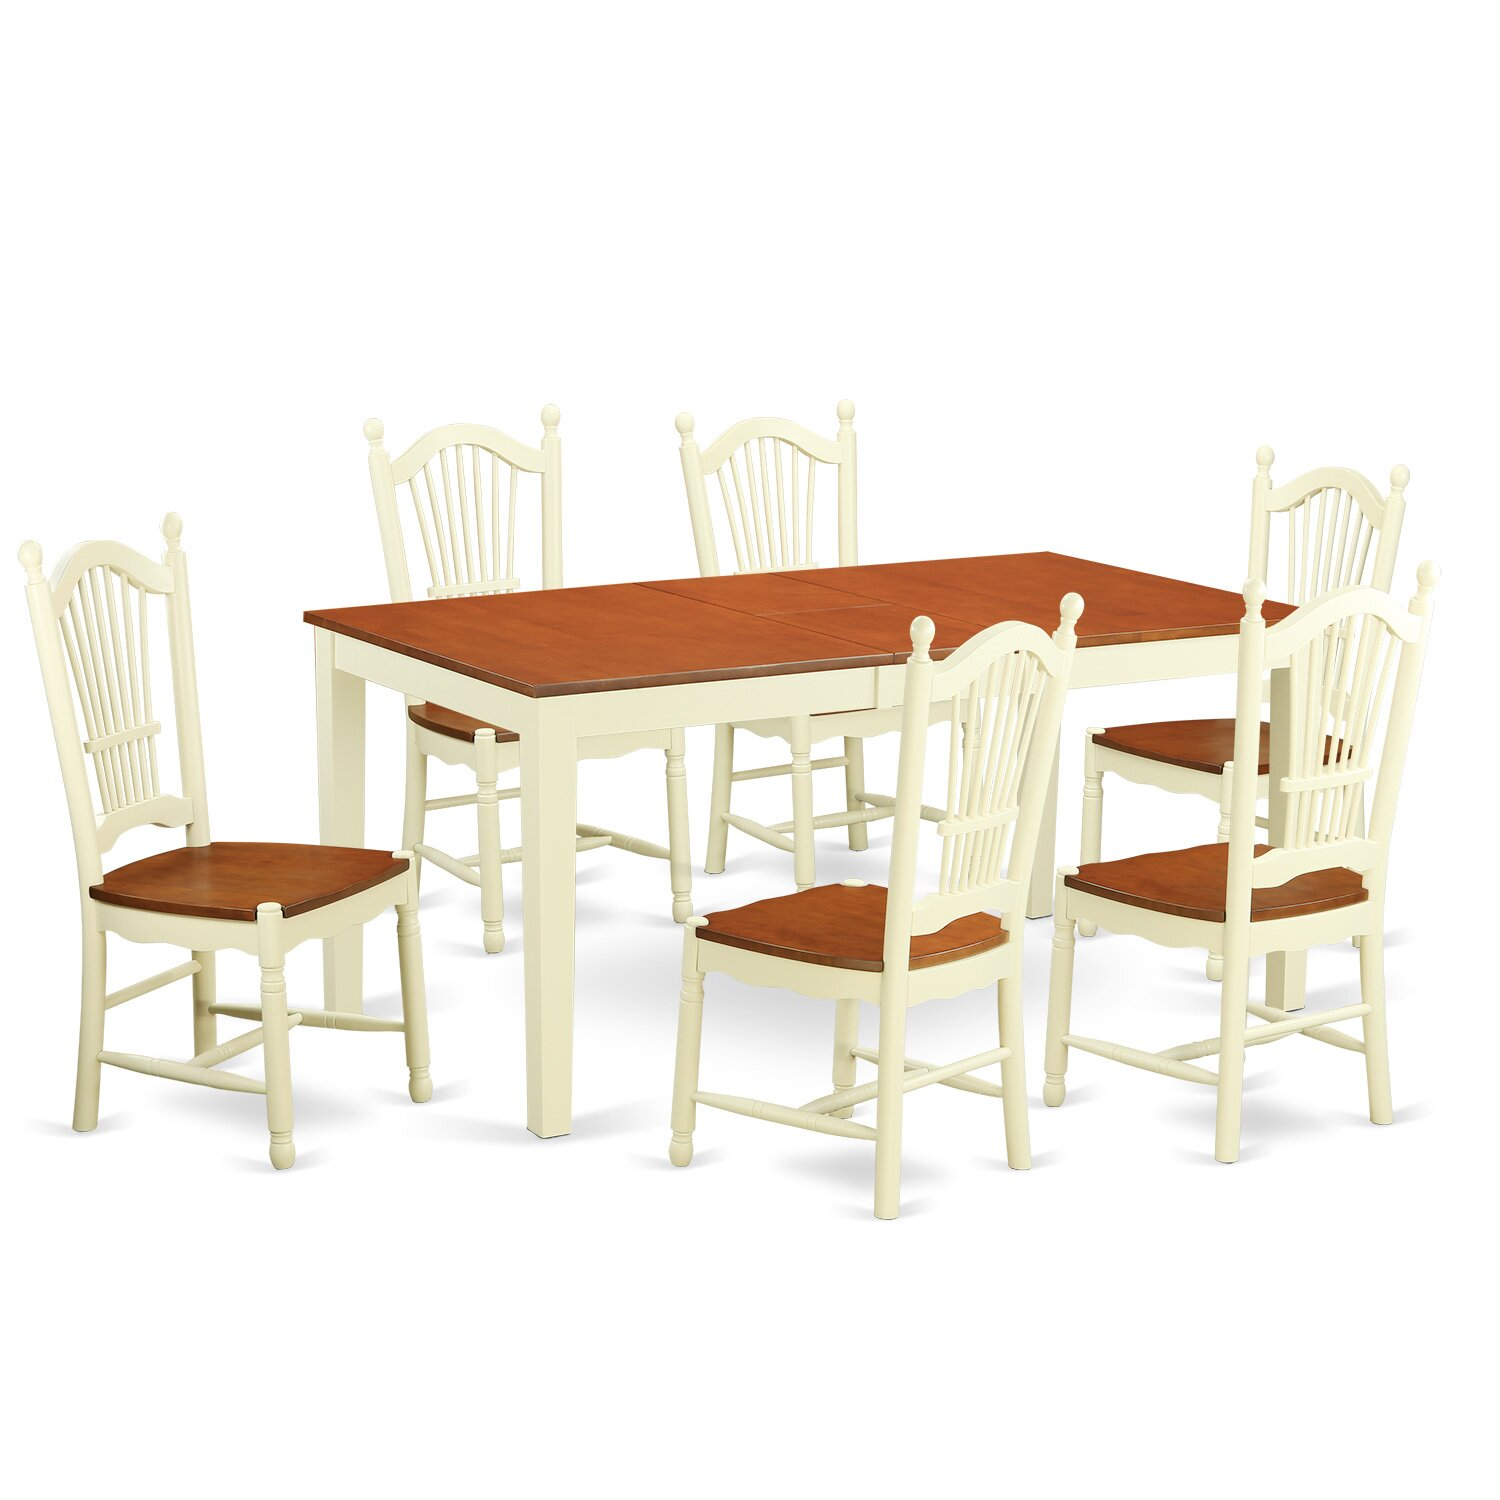 East west nicoli 7 piece dining set wayfair for Kitchen table set 7 piece